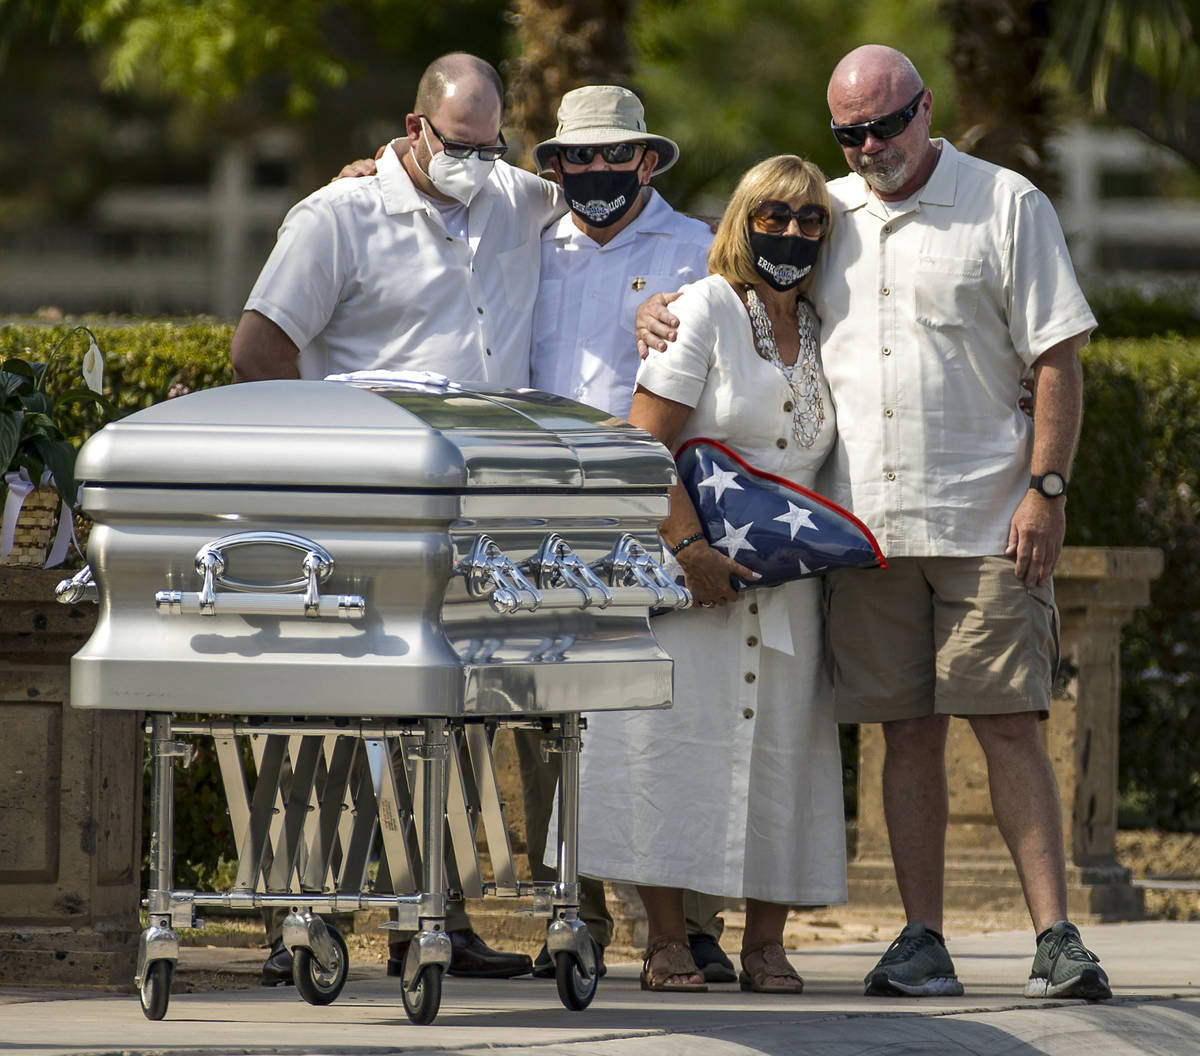 Mourners gather about the casket during a burial service for Metro Lt. Erik Lloyd at the Palm N ...